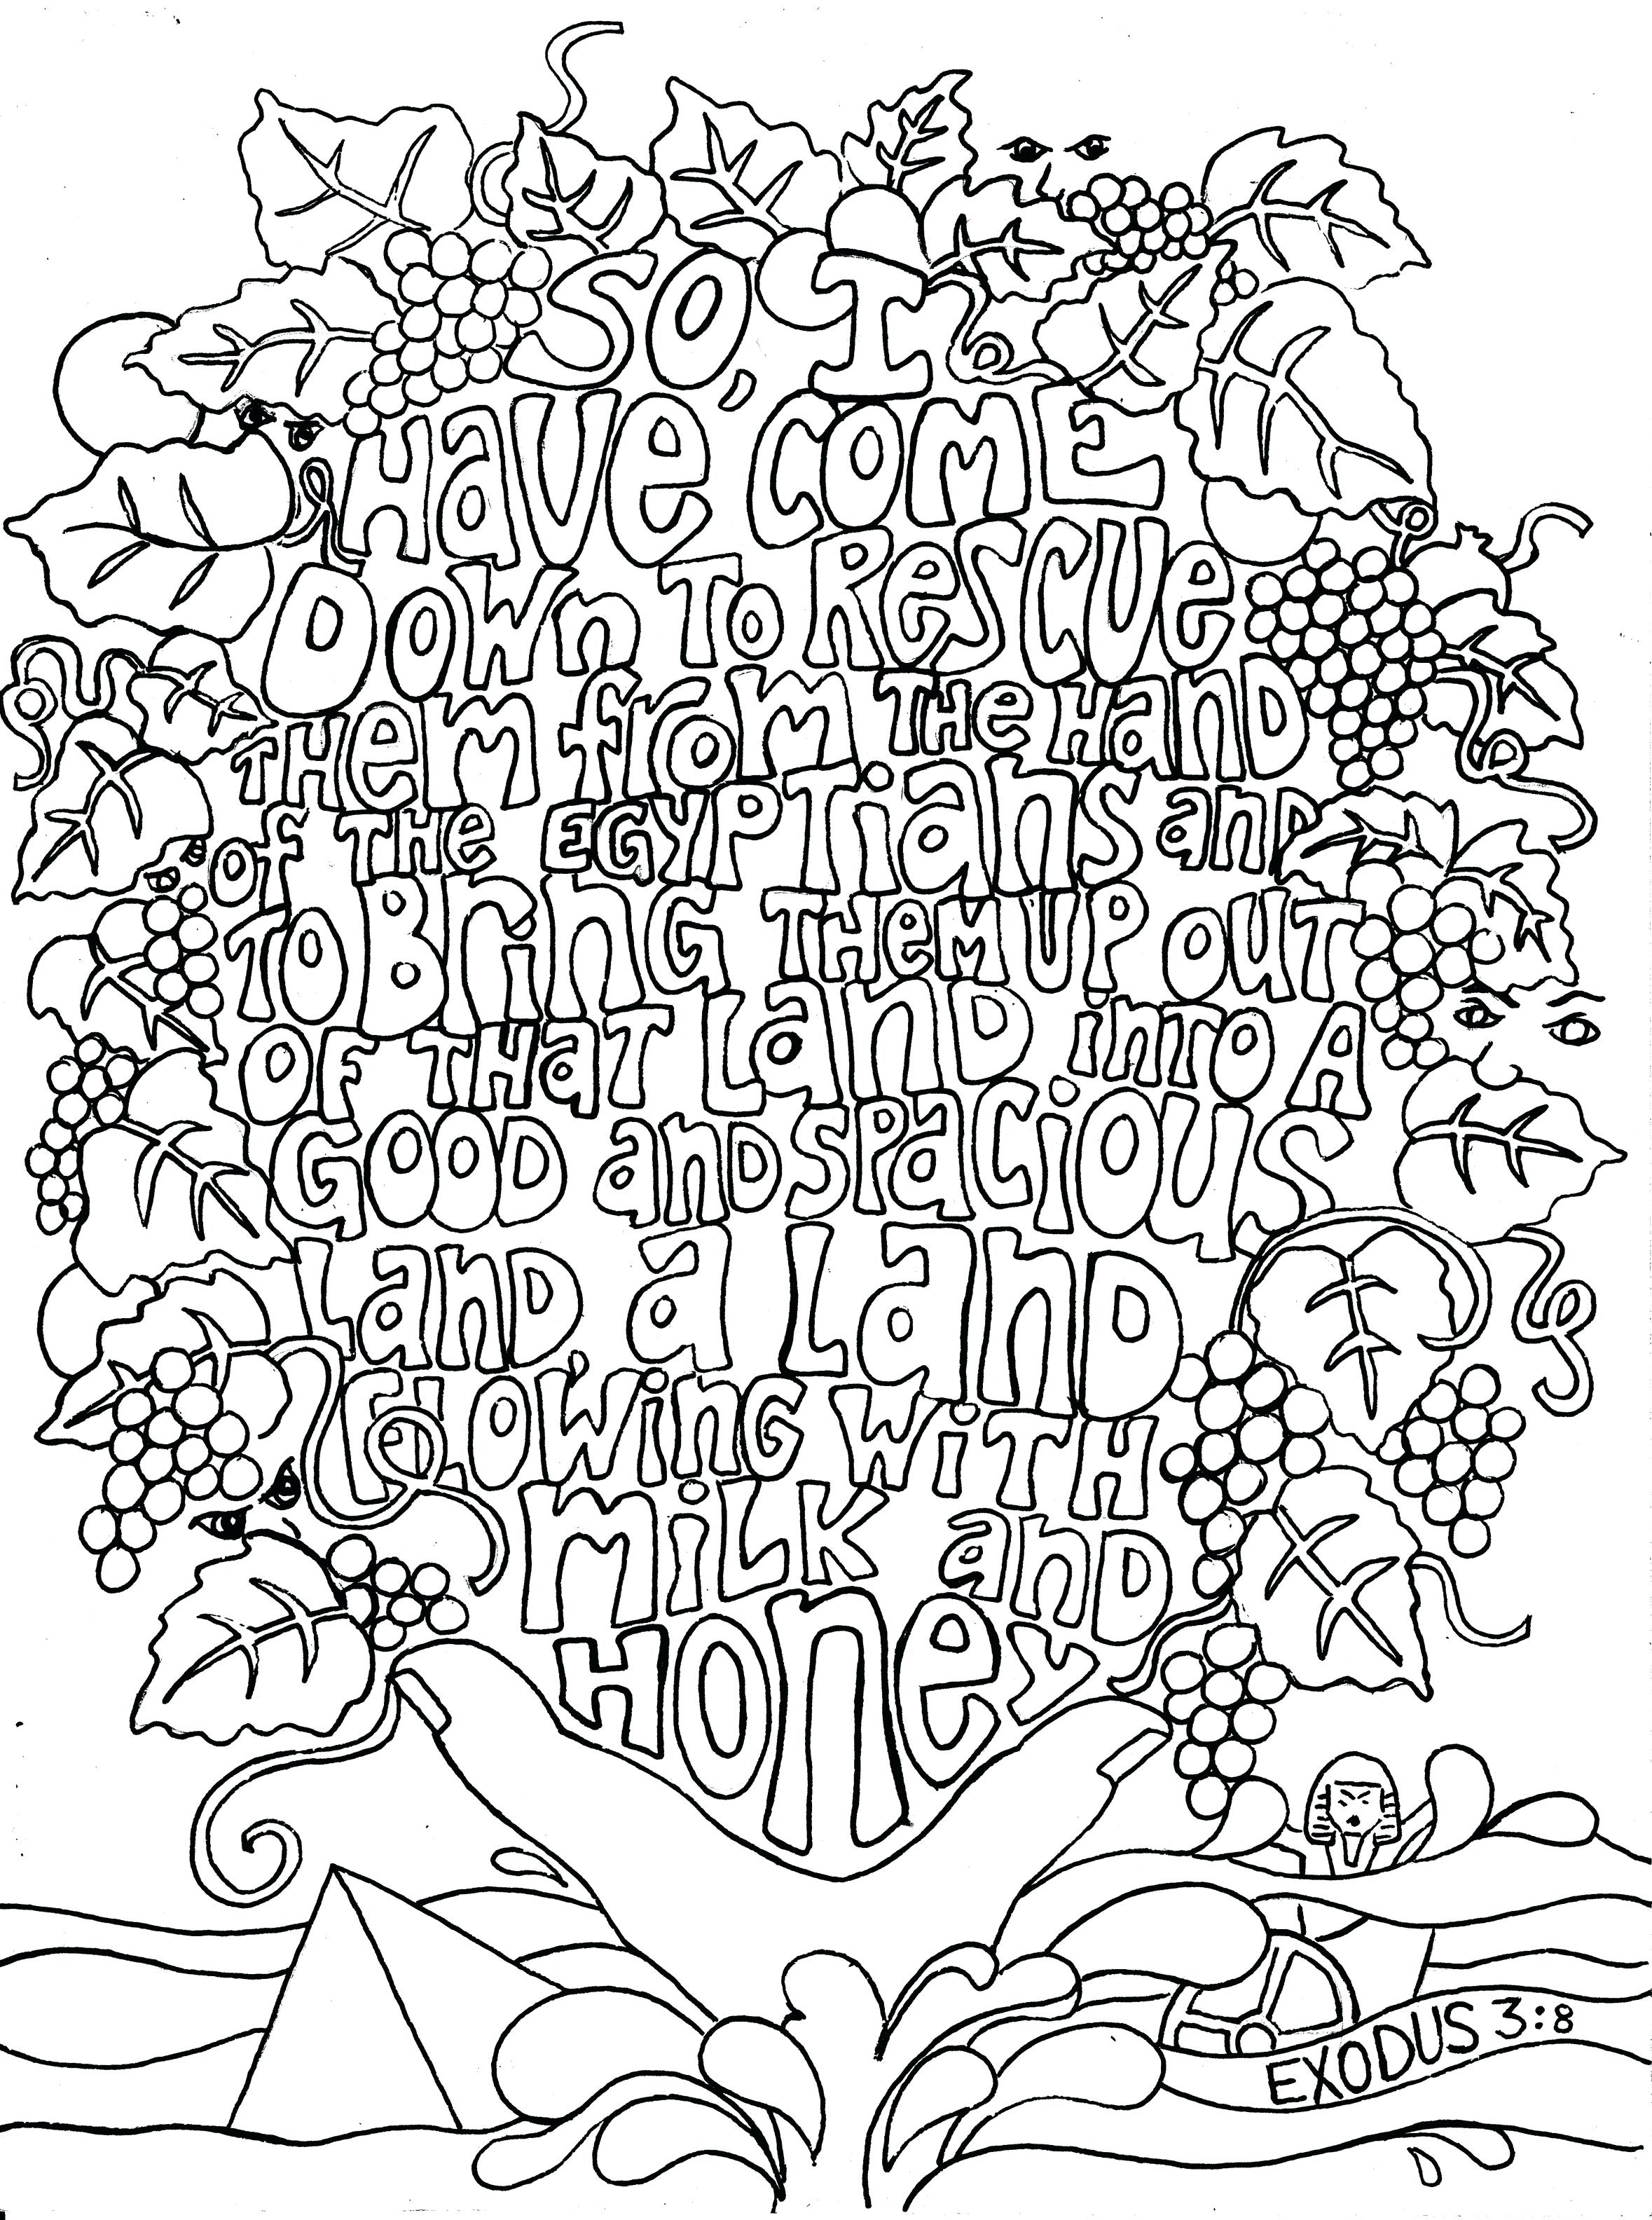 graphic regarding Free Printable Bible Verse Coloring Pages identified as Bible Verse Coloring Internet pages For Older people at